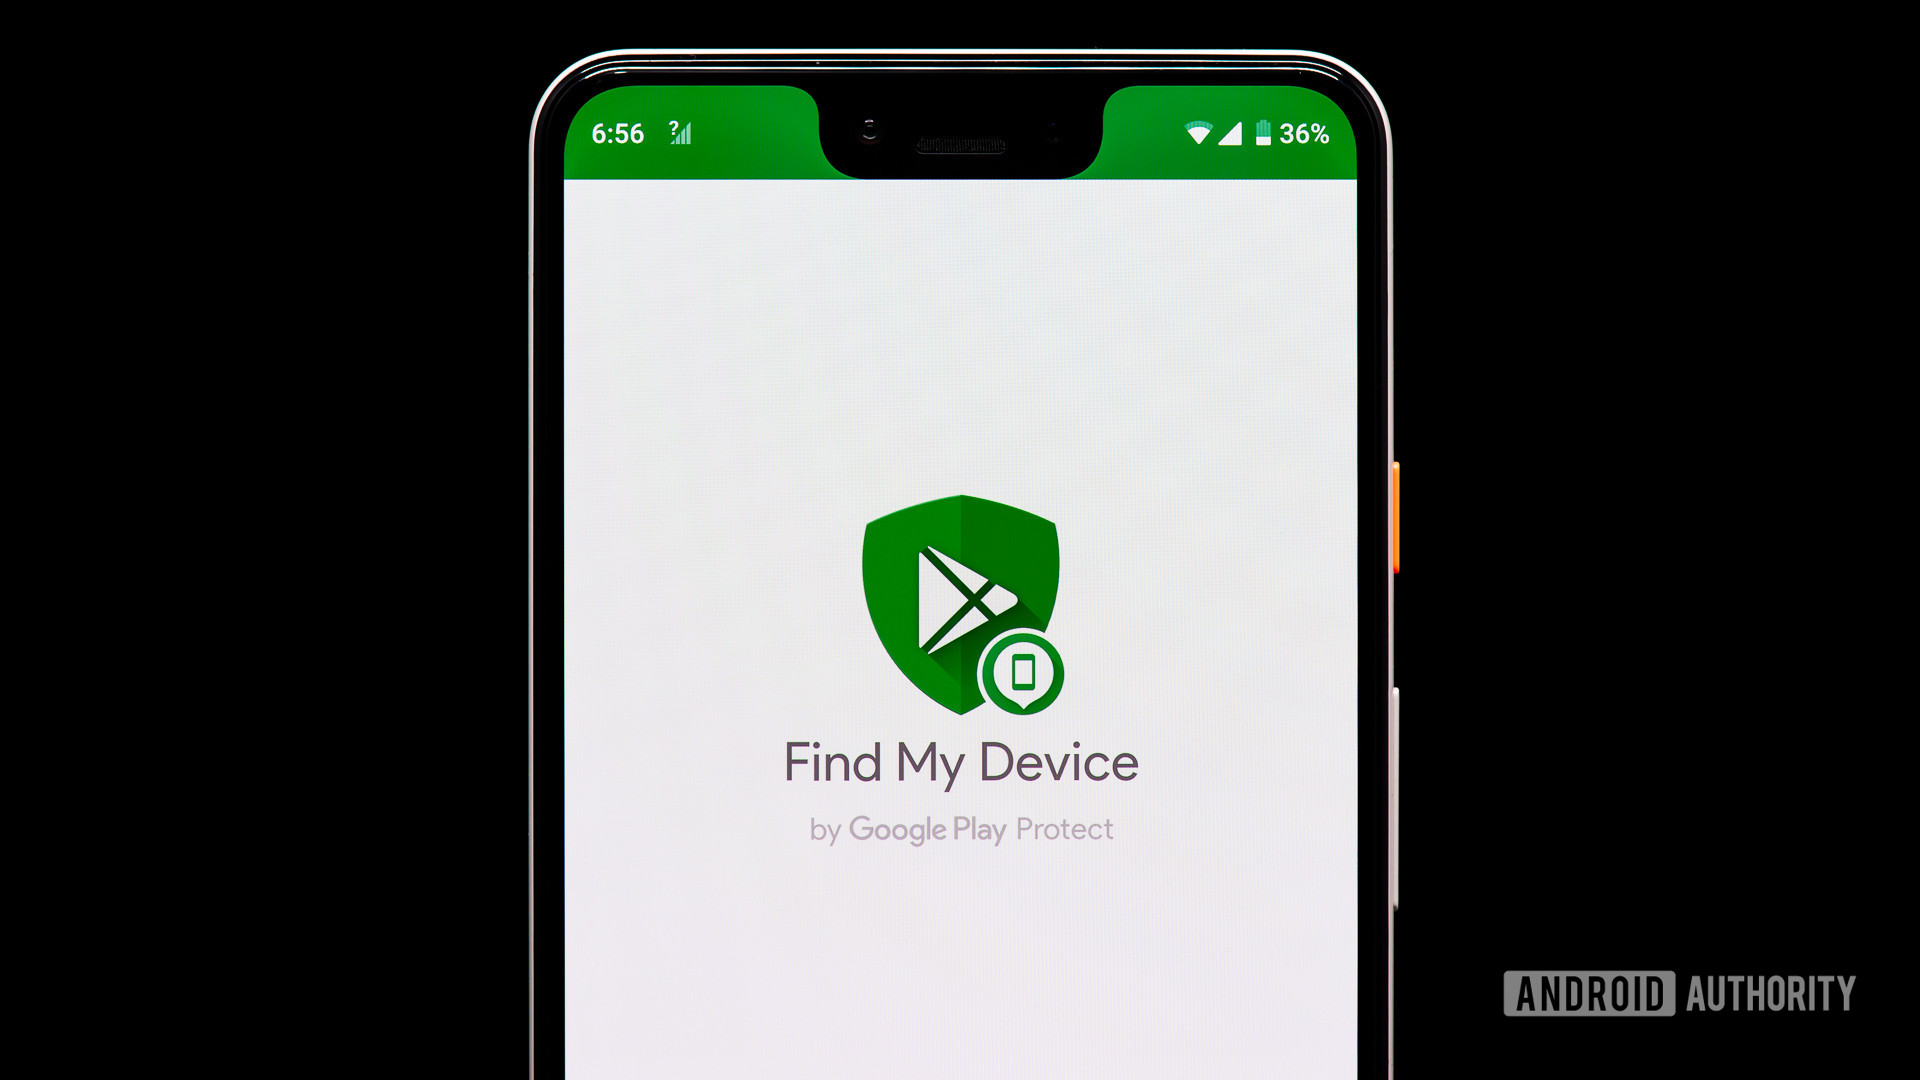 Be ready to find a lost Android device/ lock, or erase a lost Android device